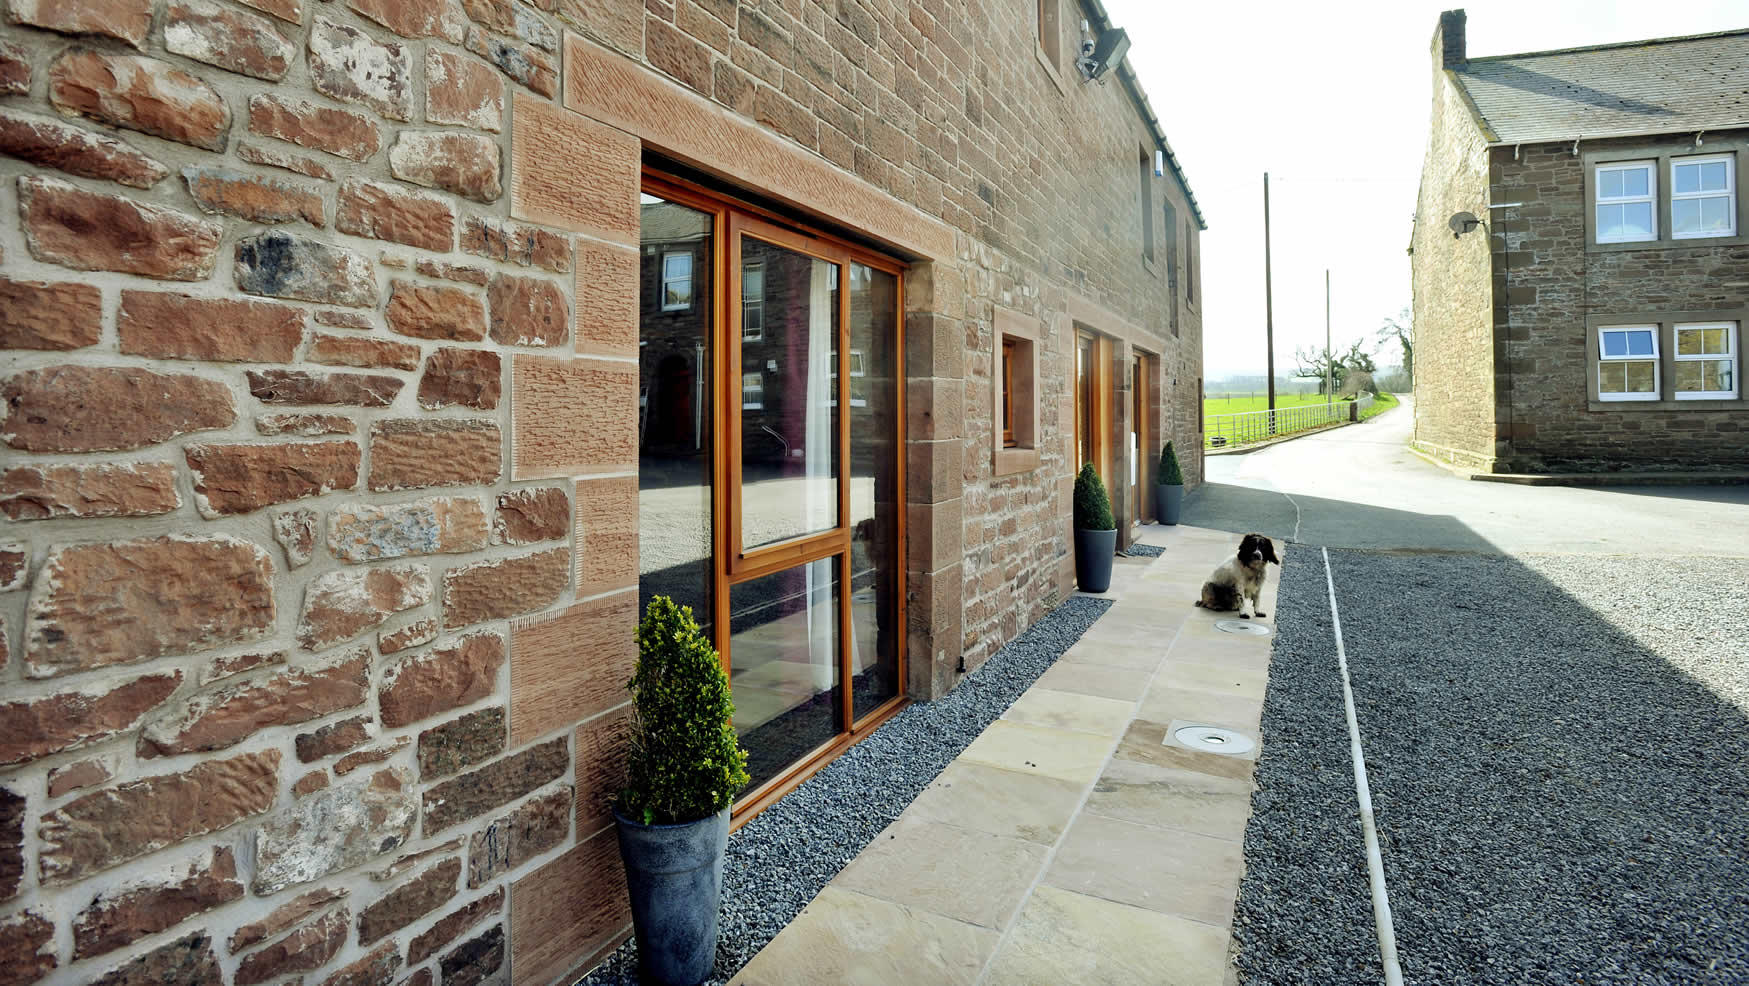 holidaycottages-courtyard-exterior